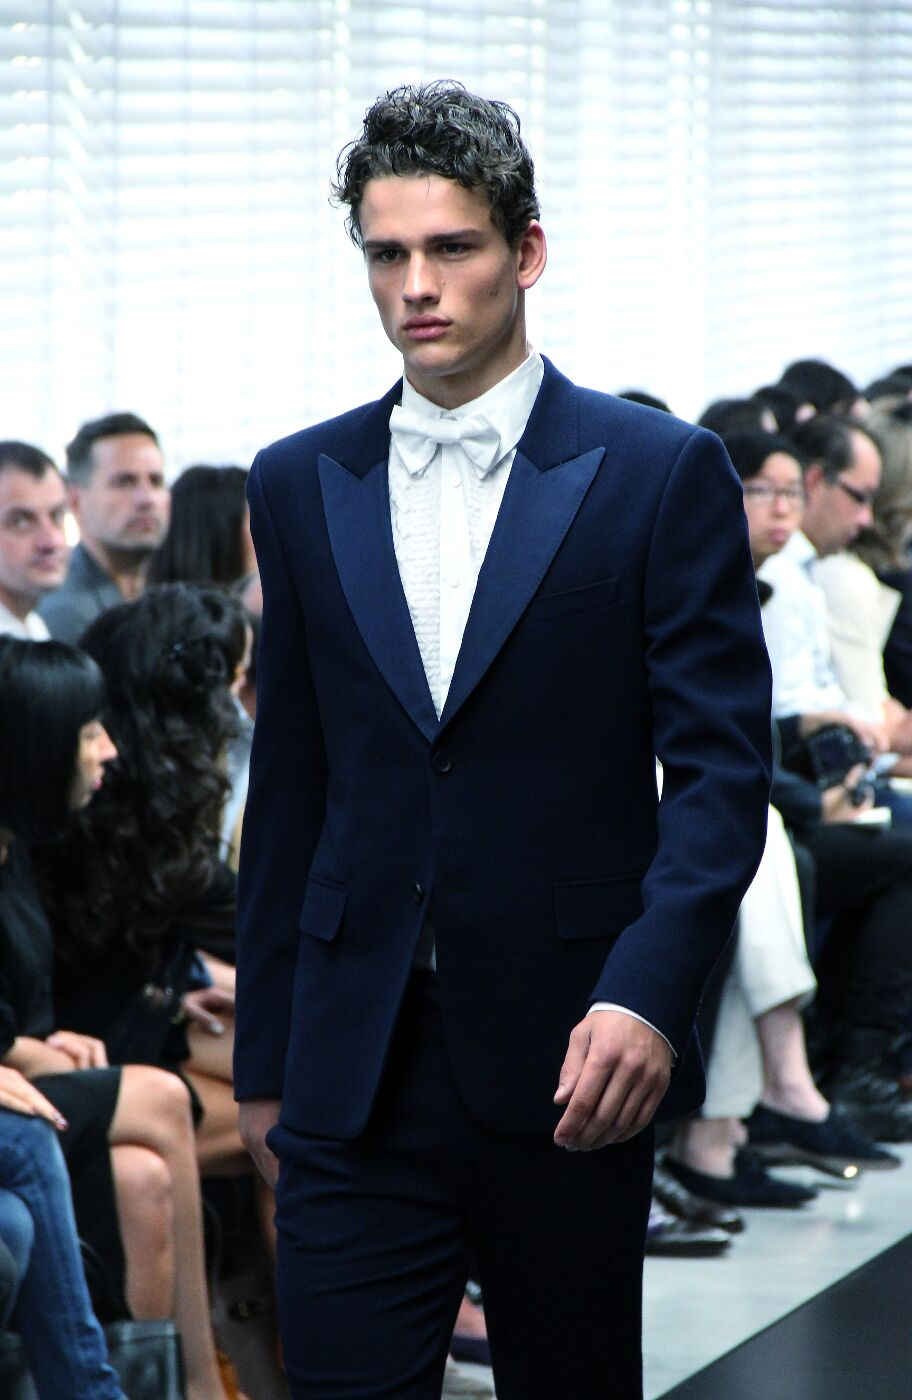 spring-summer-ermanno-scervino-2012-men-collection-milano-fashion-week-2012-ermanno-scervino-fashion-show-catwalk